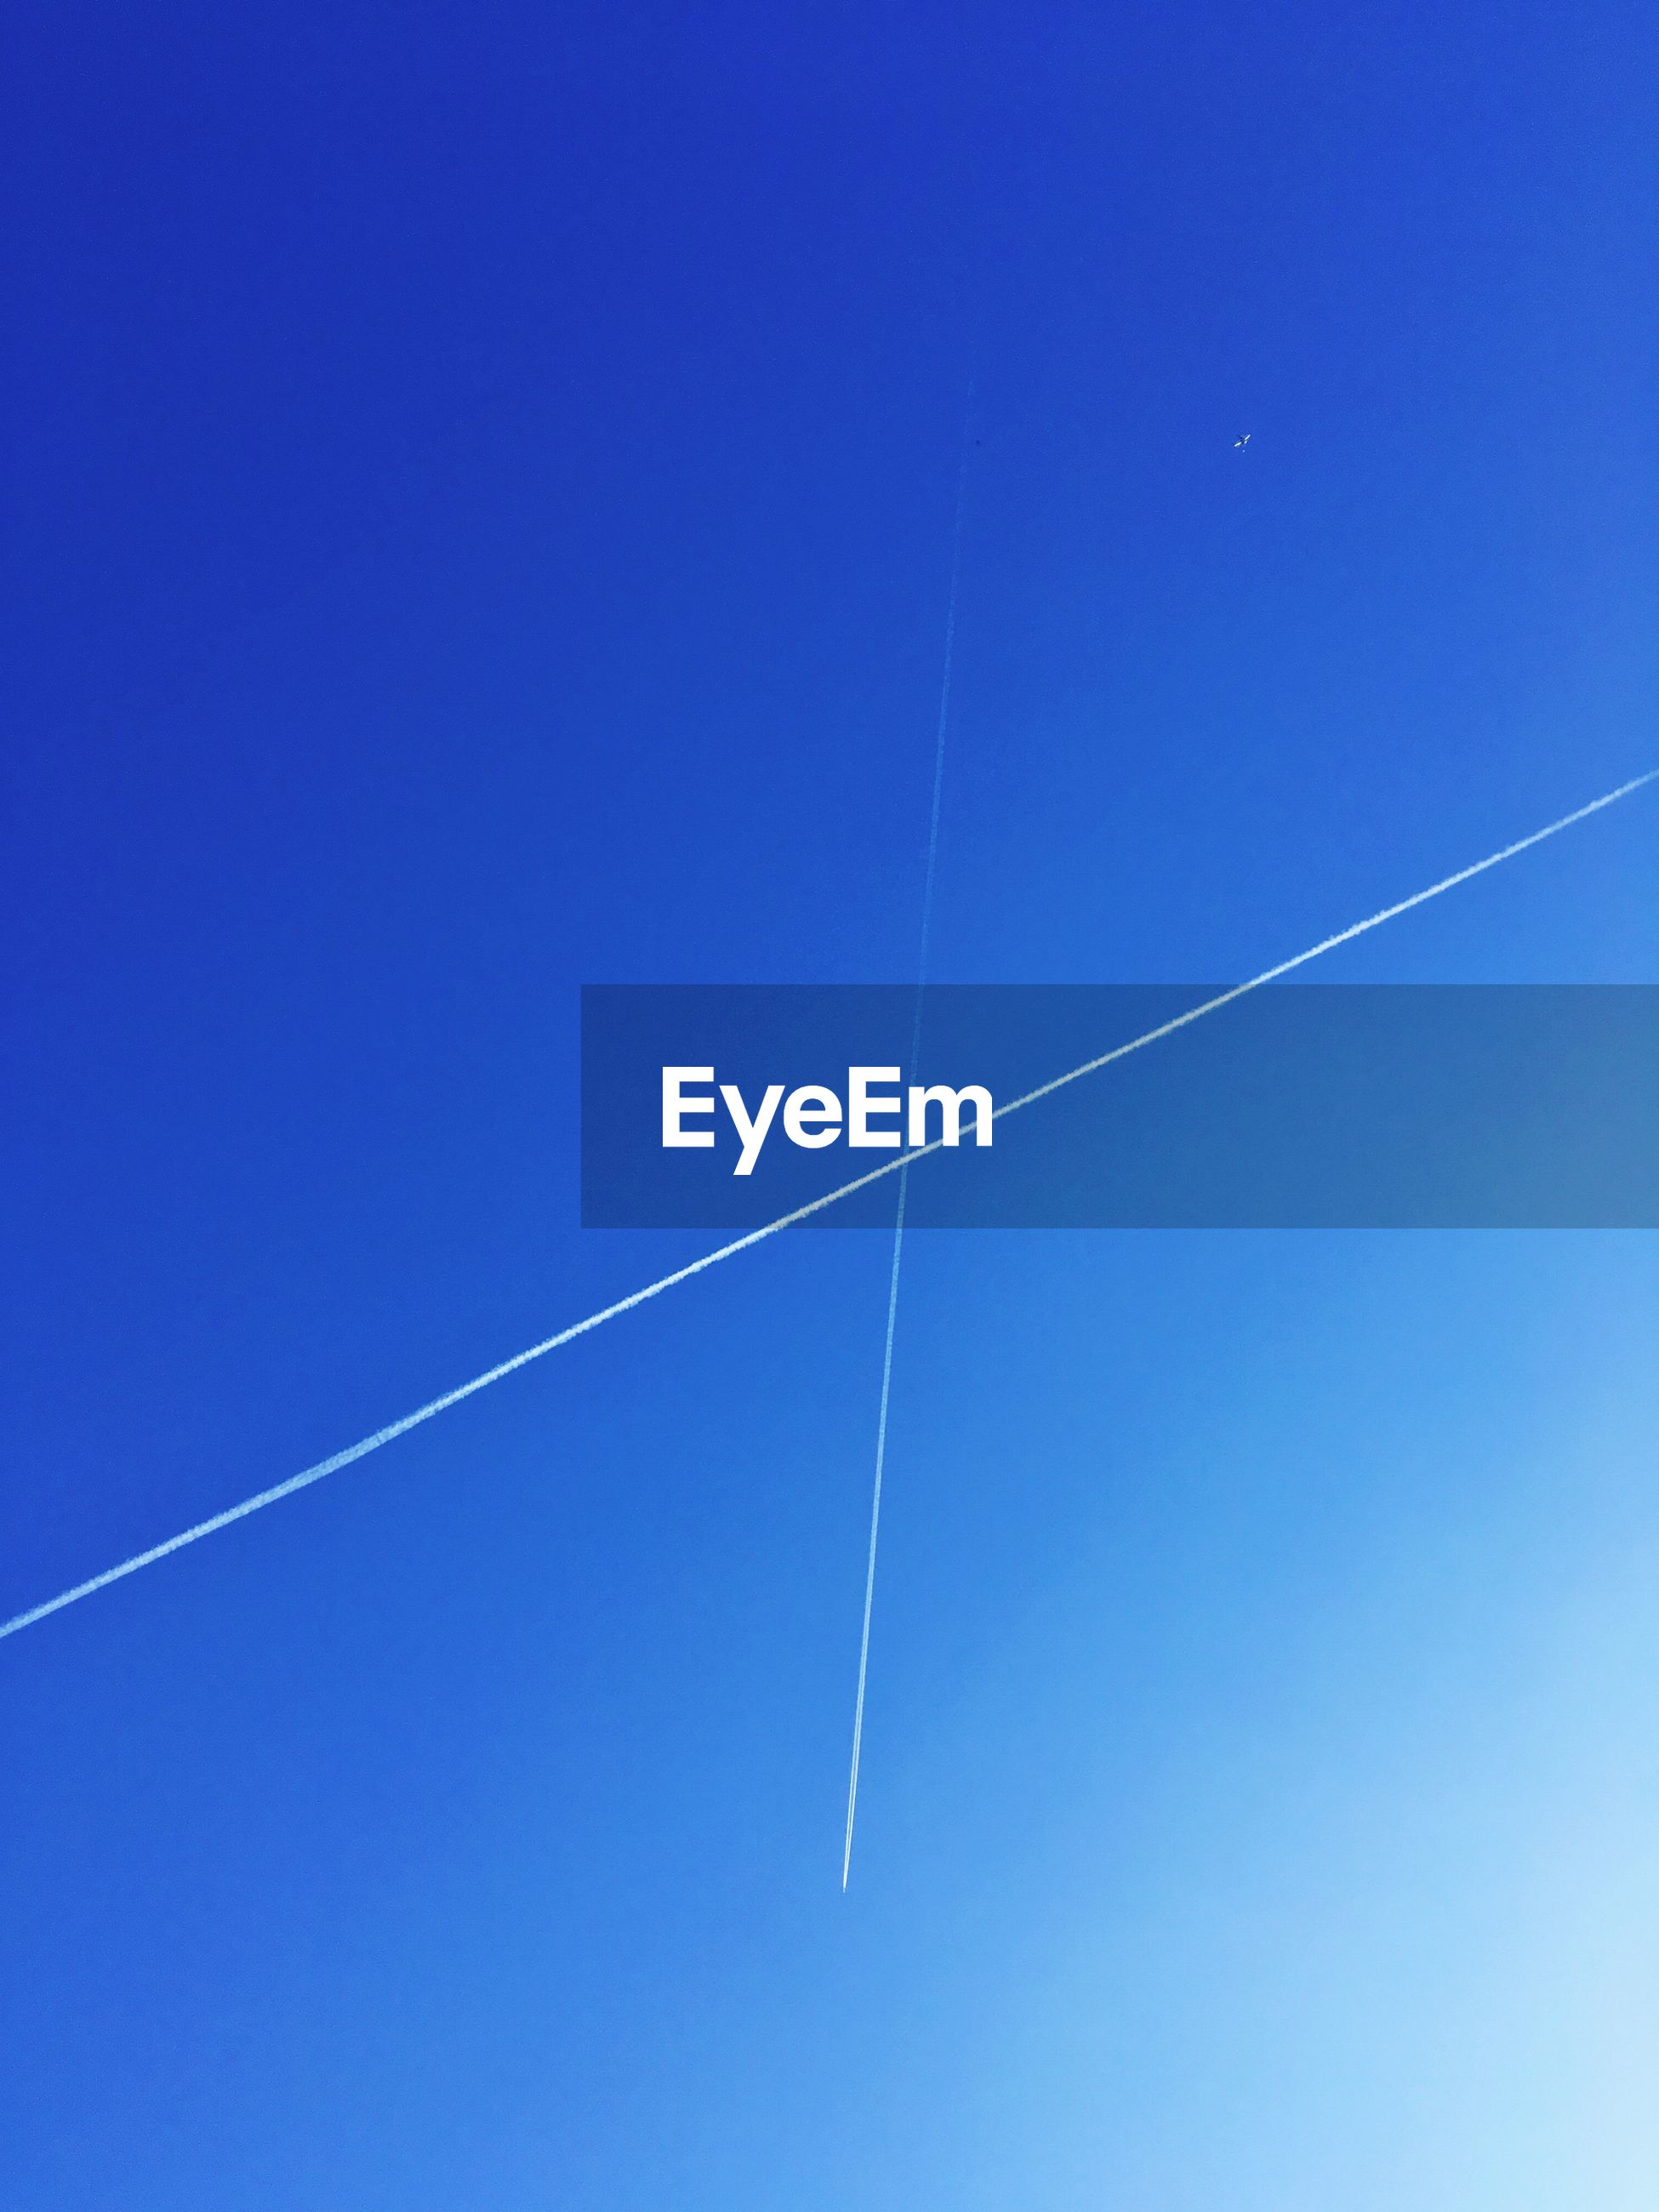 Low angle view of vapor trails in clear blue sky